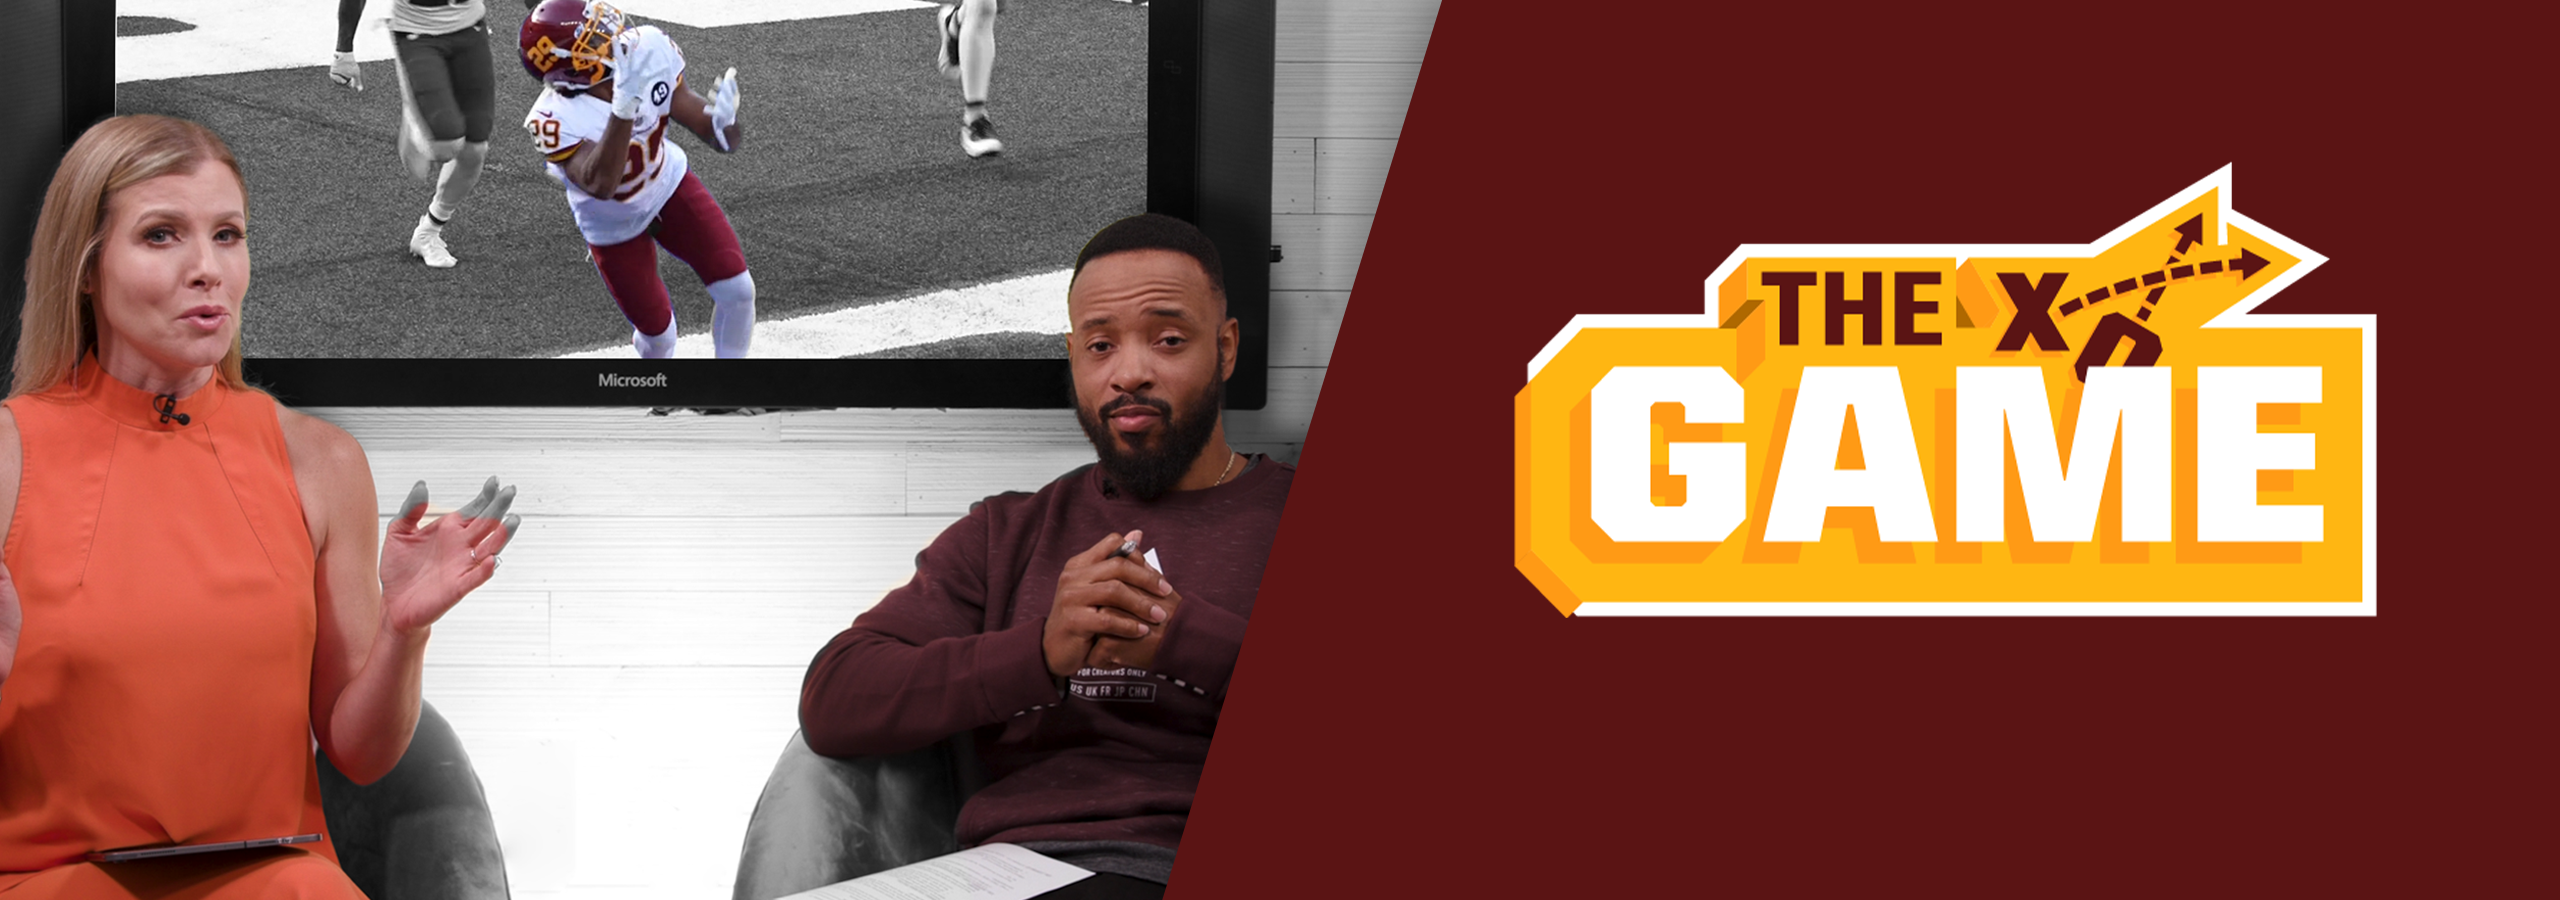 Santana Moss joins Julie Donaldson to break down the X's & O's following every Washington Football Team game. Going beyond the stats and inside the minds of the players on Gameday, The Game provides viewers with the most in-depth coverage of their favorite football team. The Game drops on Tuesdays.